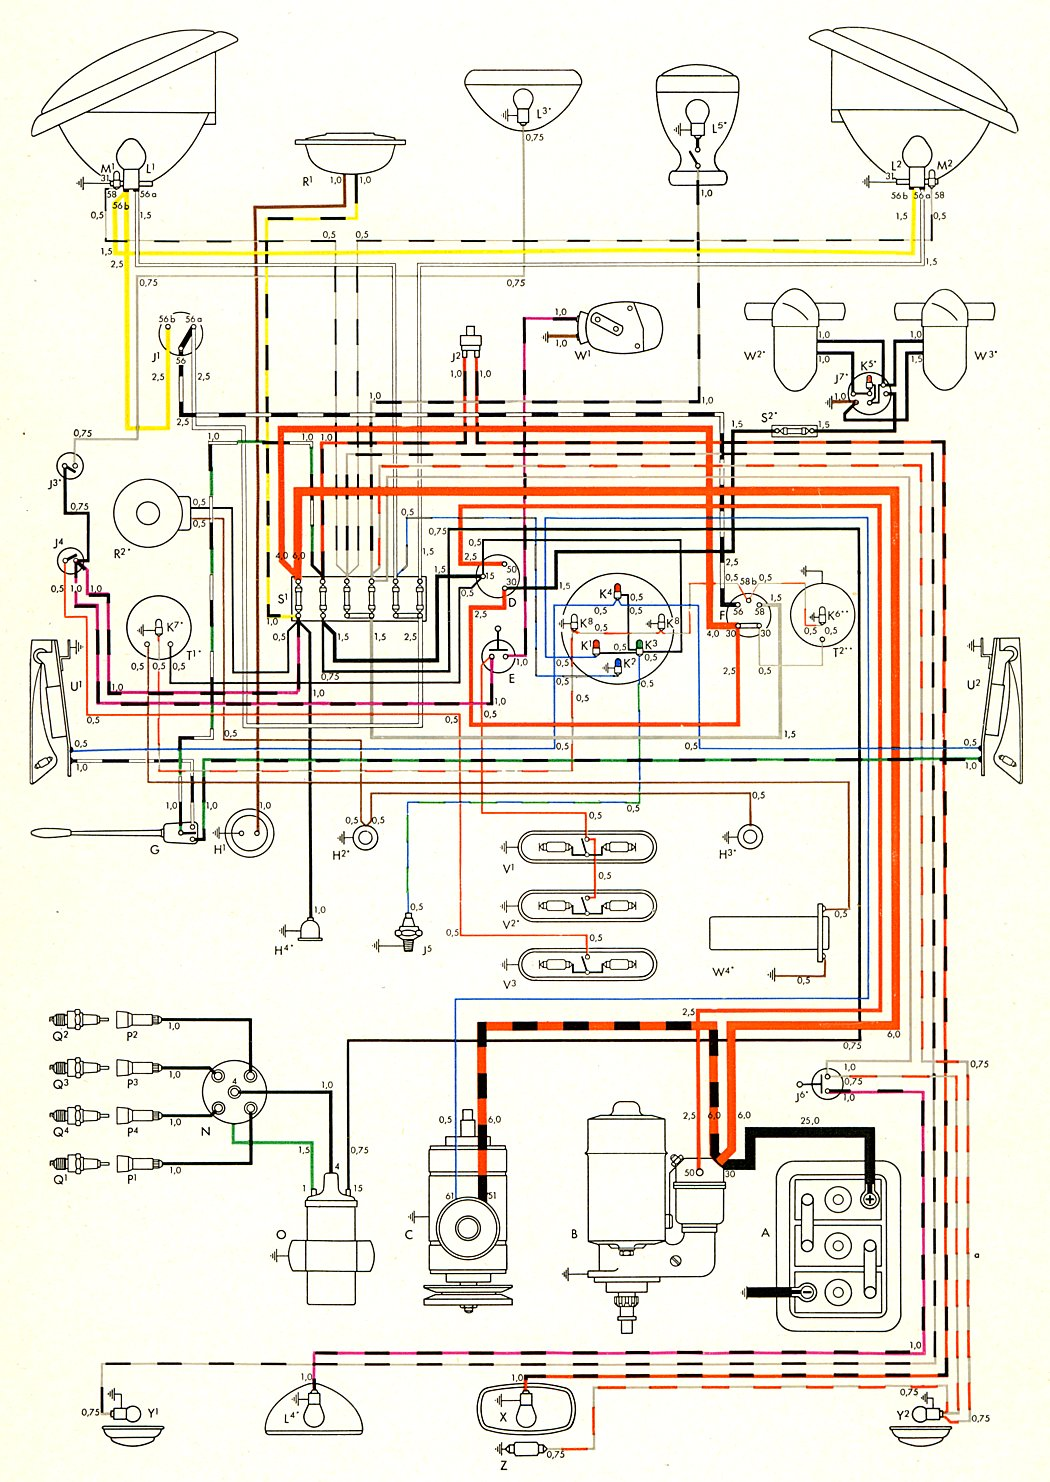 1965 Beetle Wiring Diagram Thegoldenbugcom Vw Bus 1966 Libraries Library1957 Thegoldenbug Com